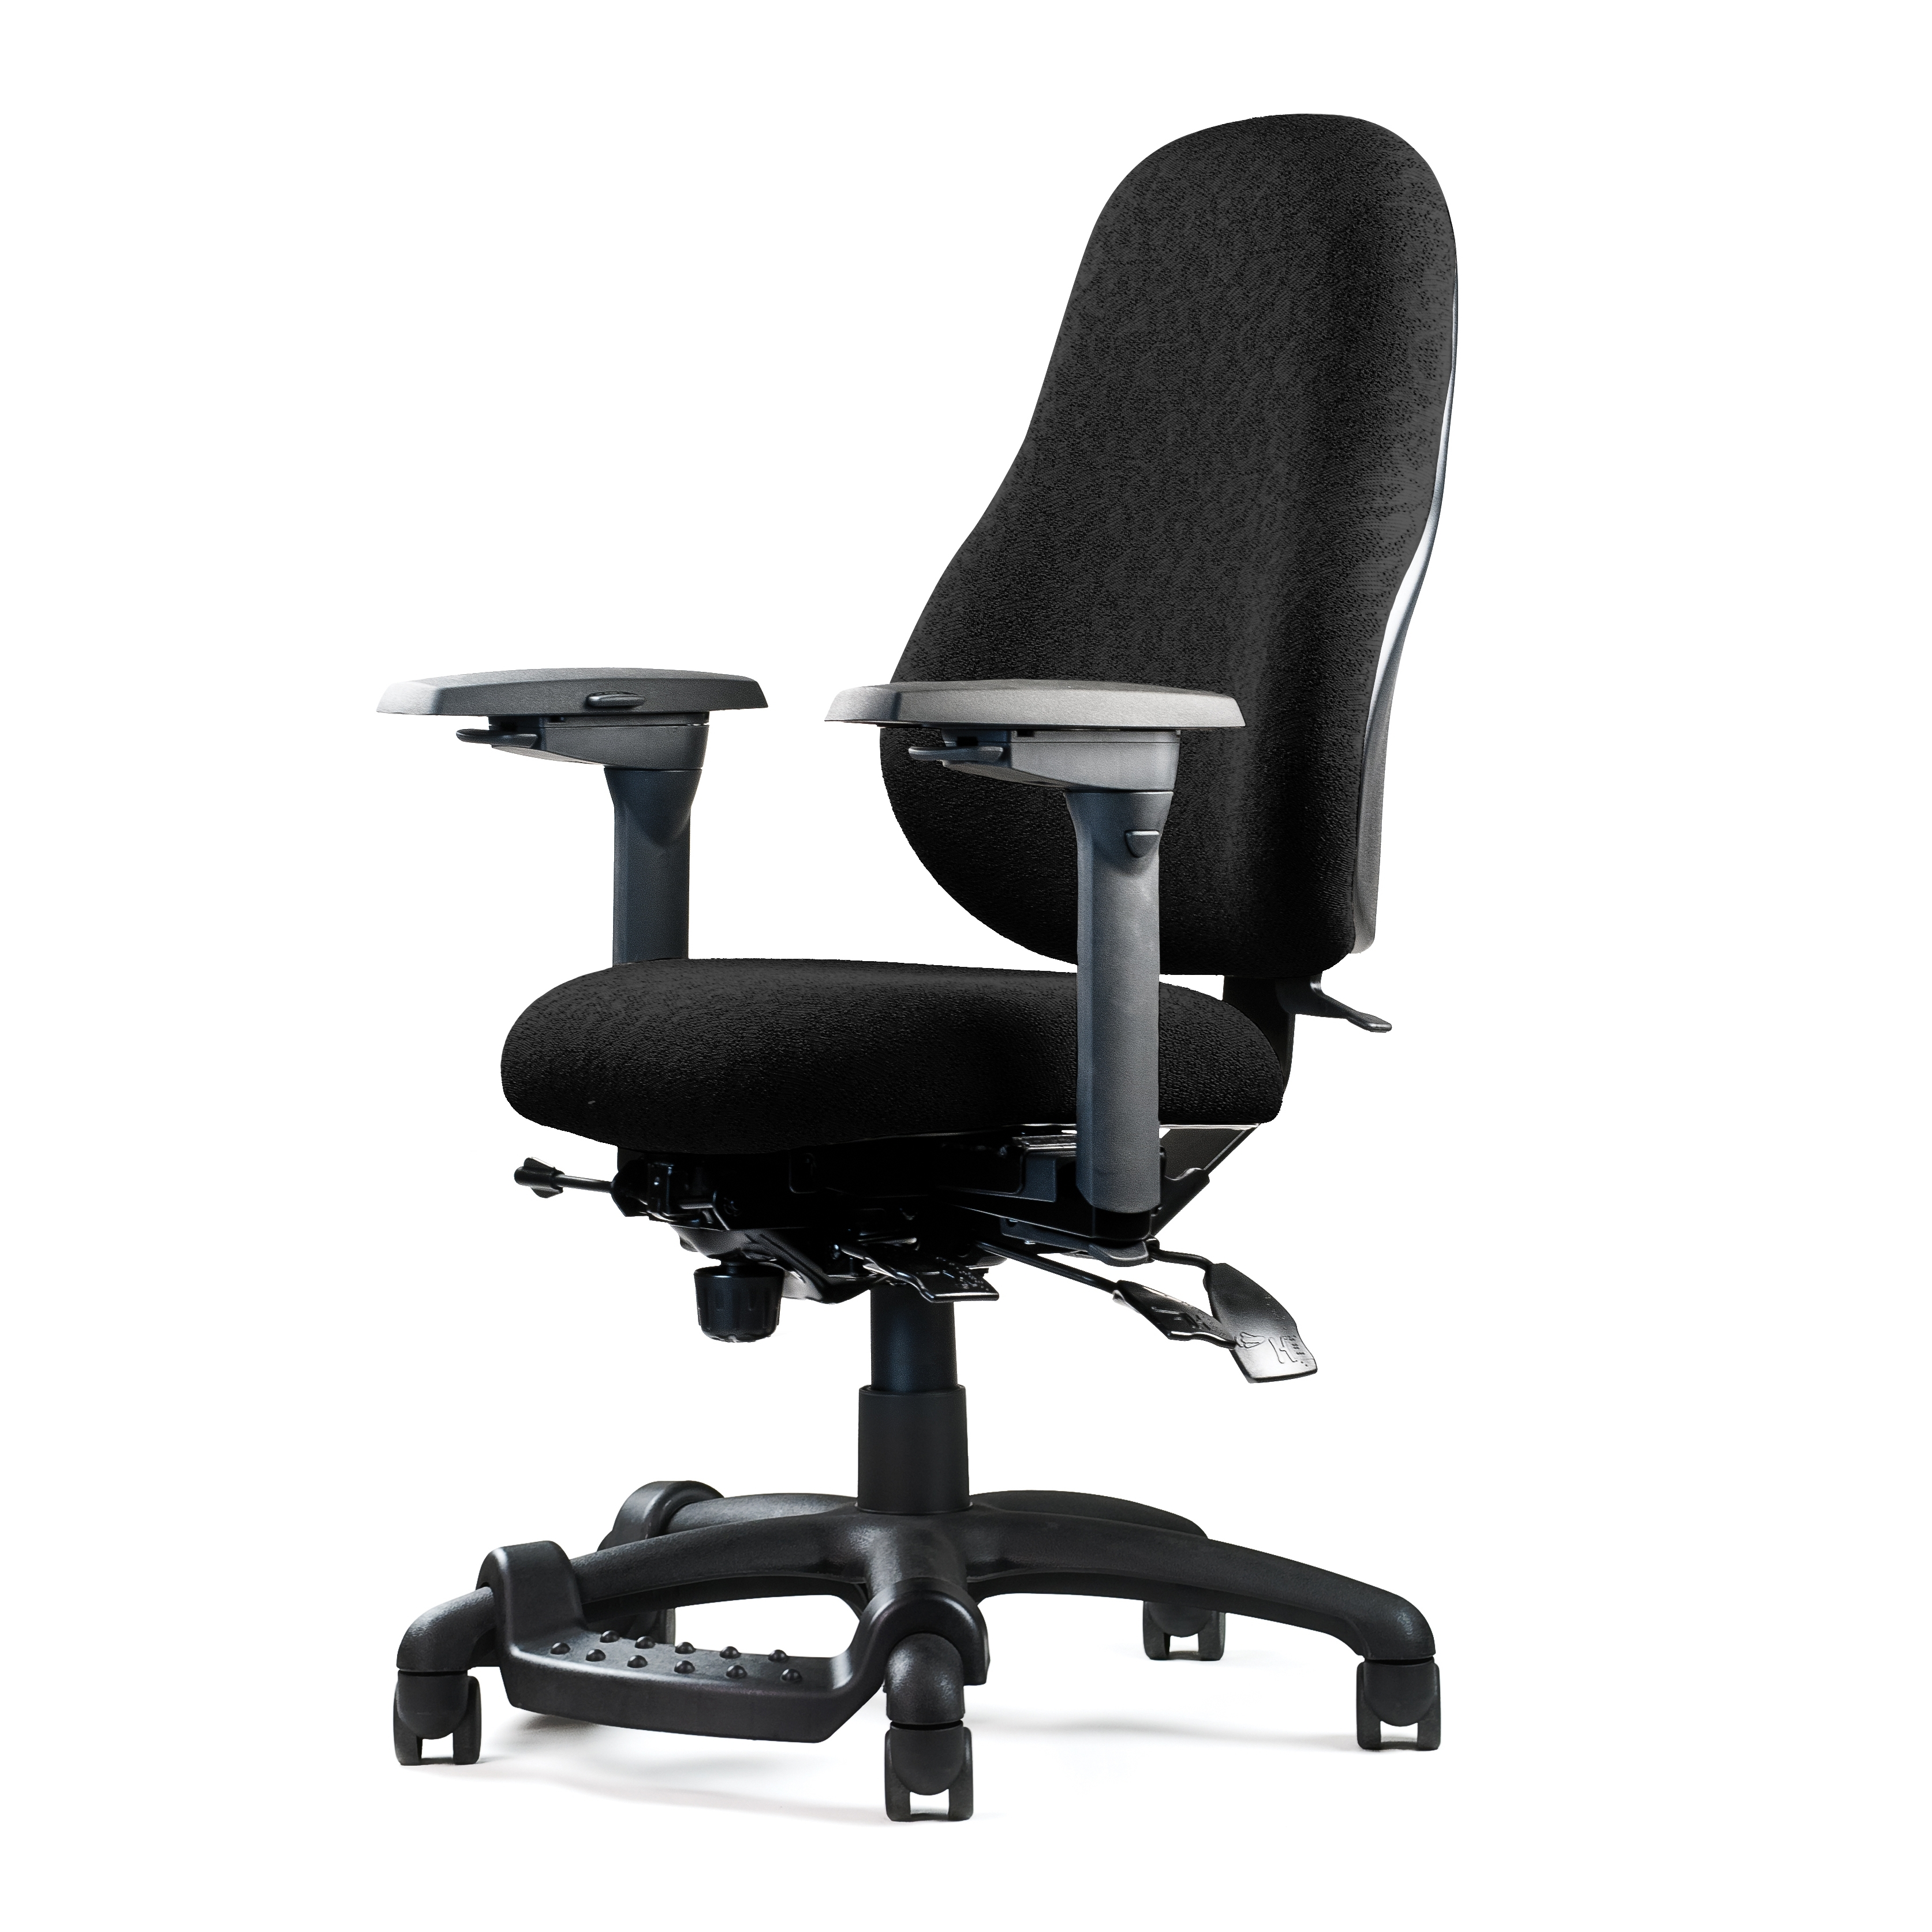 Favorite Executive Office Chairs With Leg Rest Regarding Executive Office Chair With Leg Rest • Office Chairs (View 11 of 20)